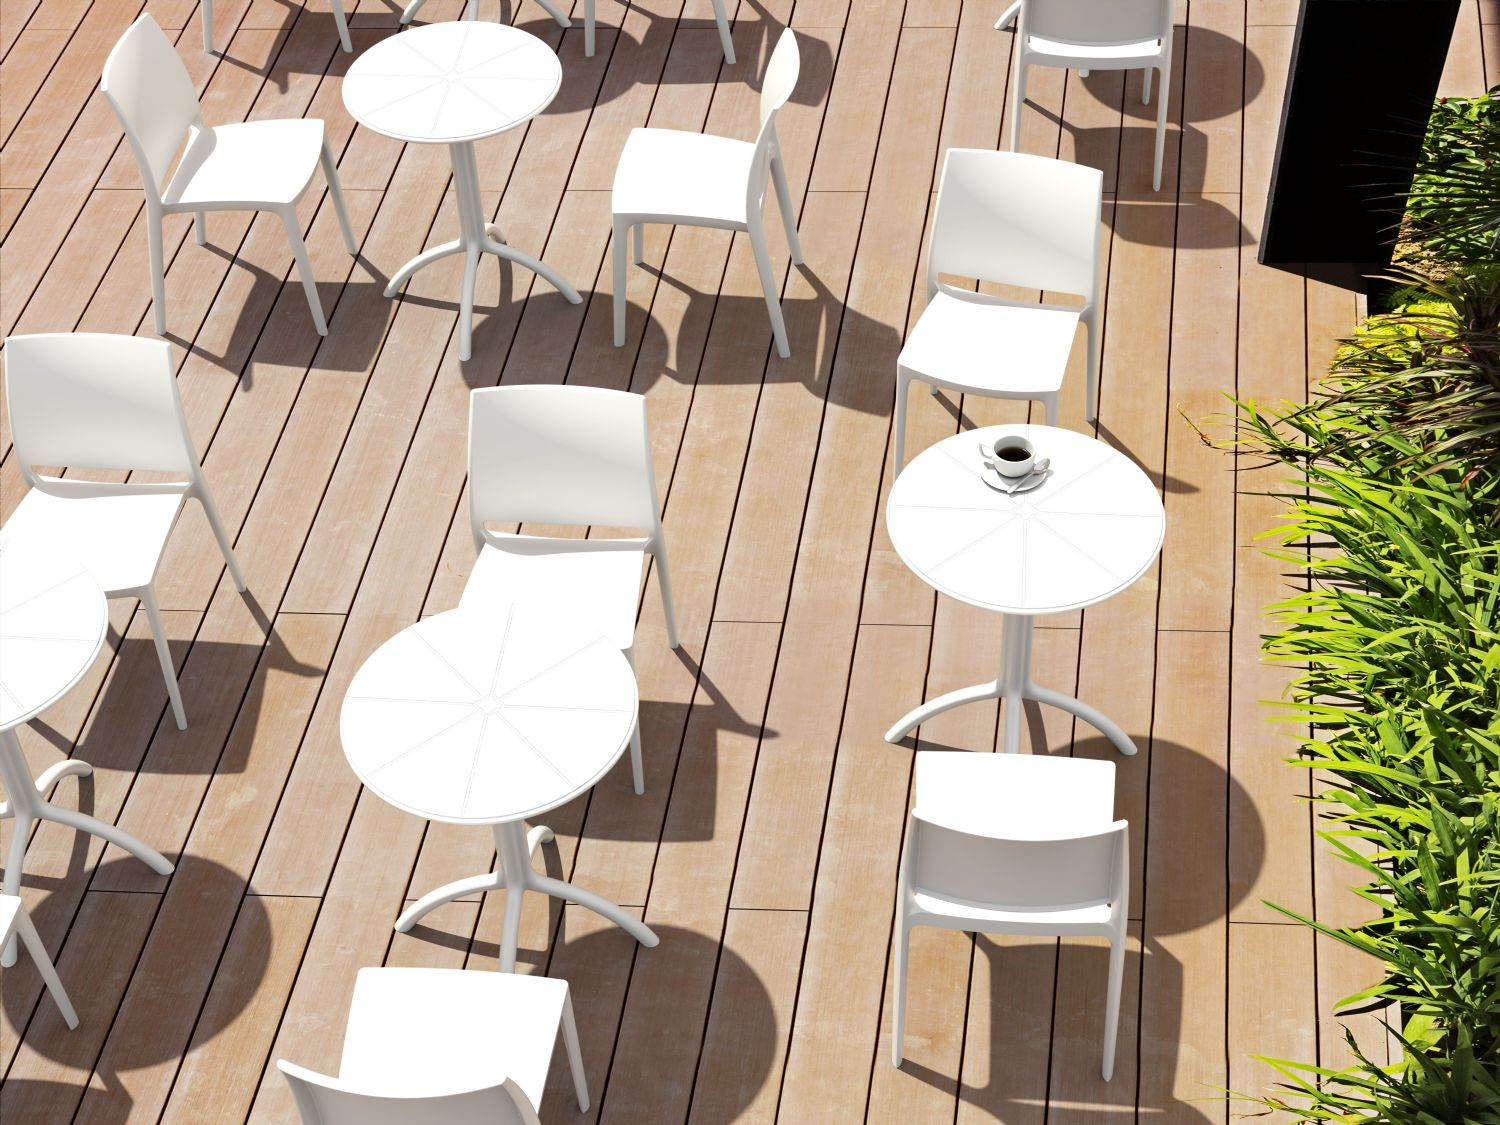 Octopus Outdoor Dining Table 24 inch Round Taupe ISP160-DVR - 12